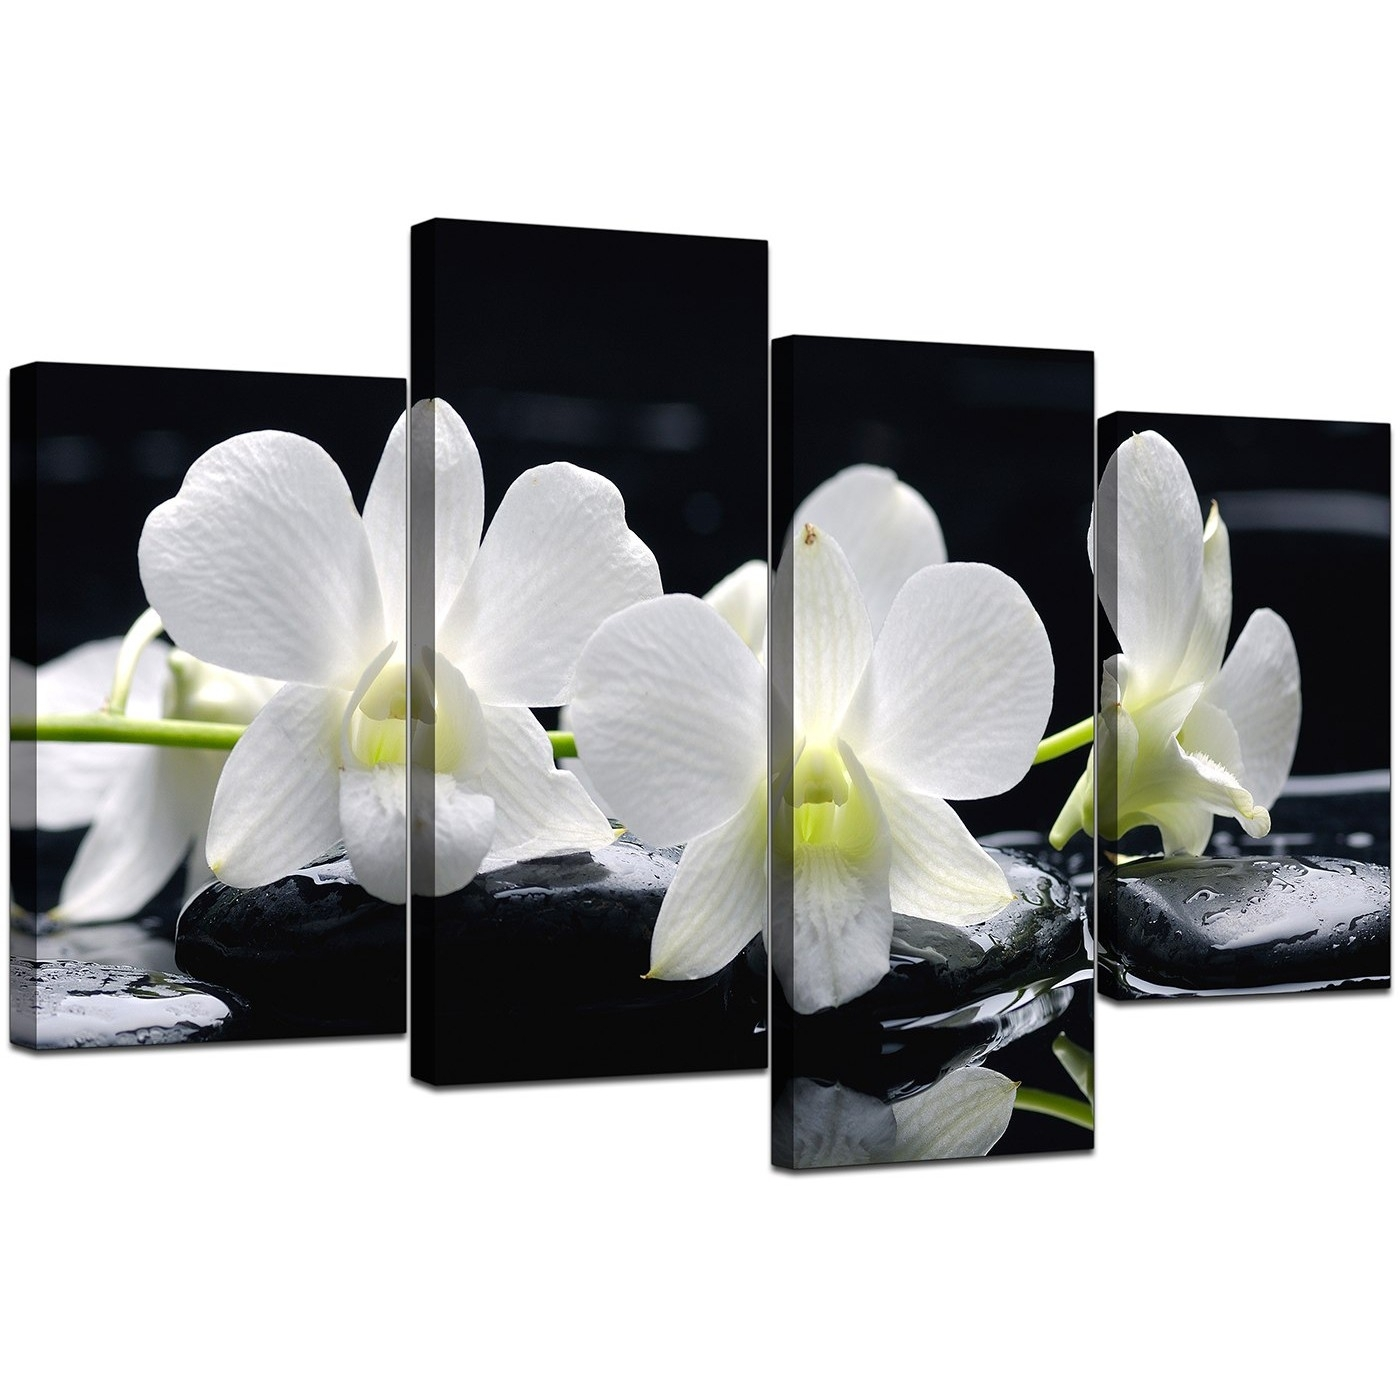 Canvas Wall Art Of Orchids In Black & White For Your Living Room For Recent Orchid Canvas Wall Art (View 3 of 15)